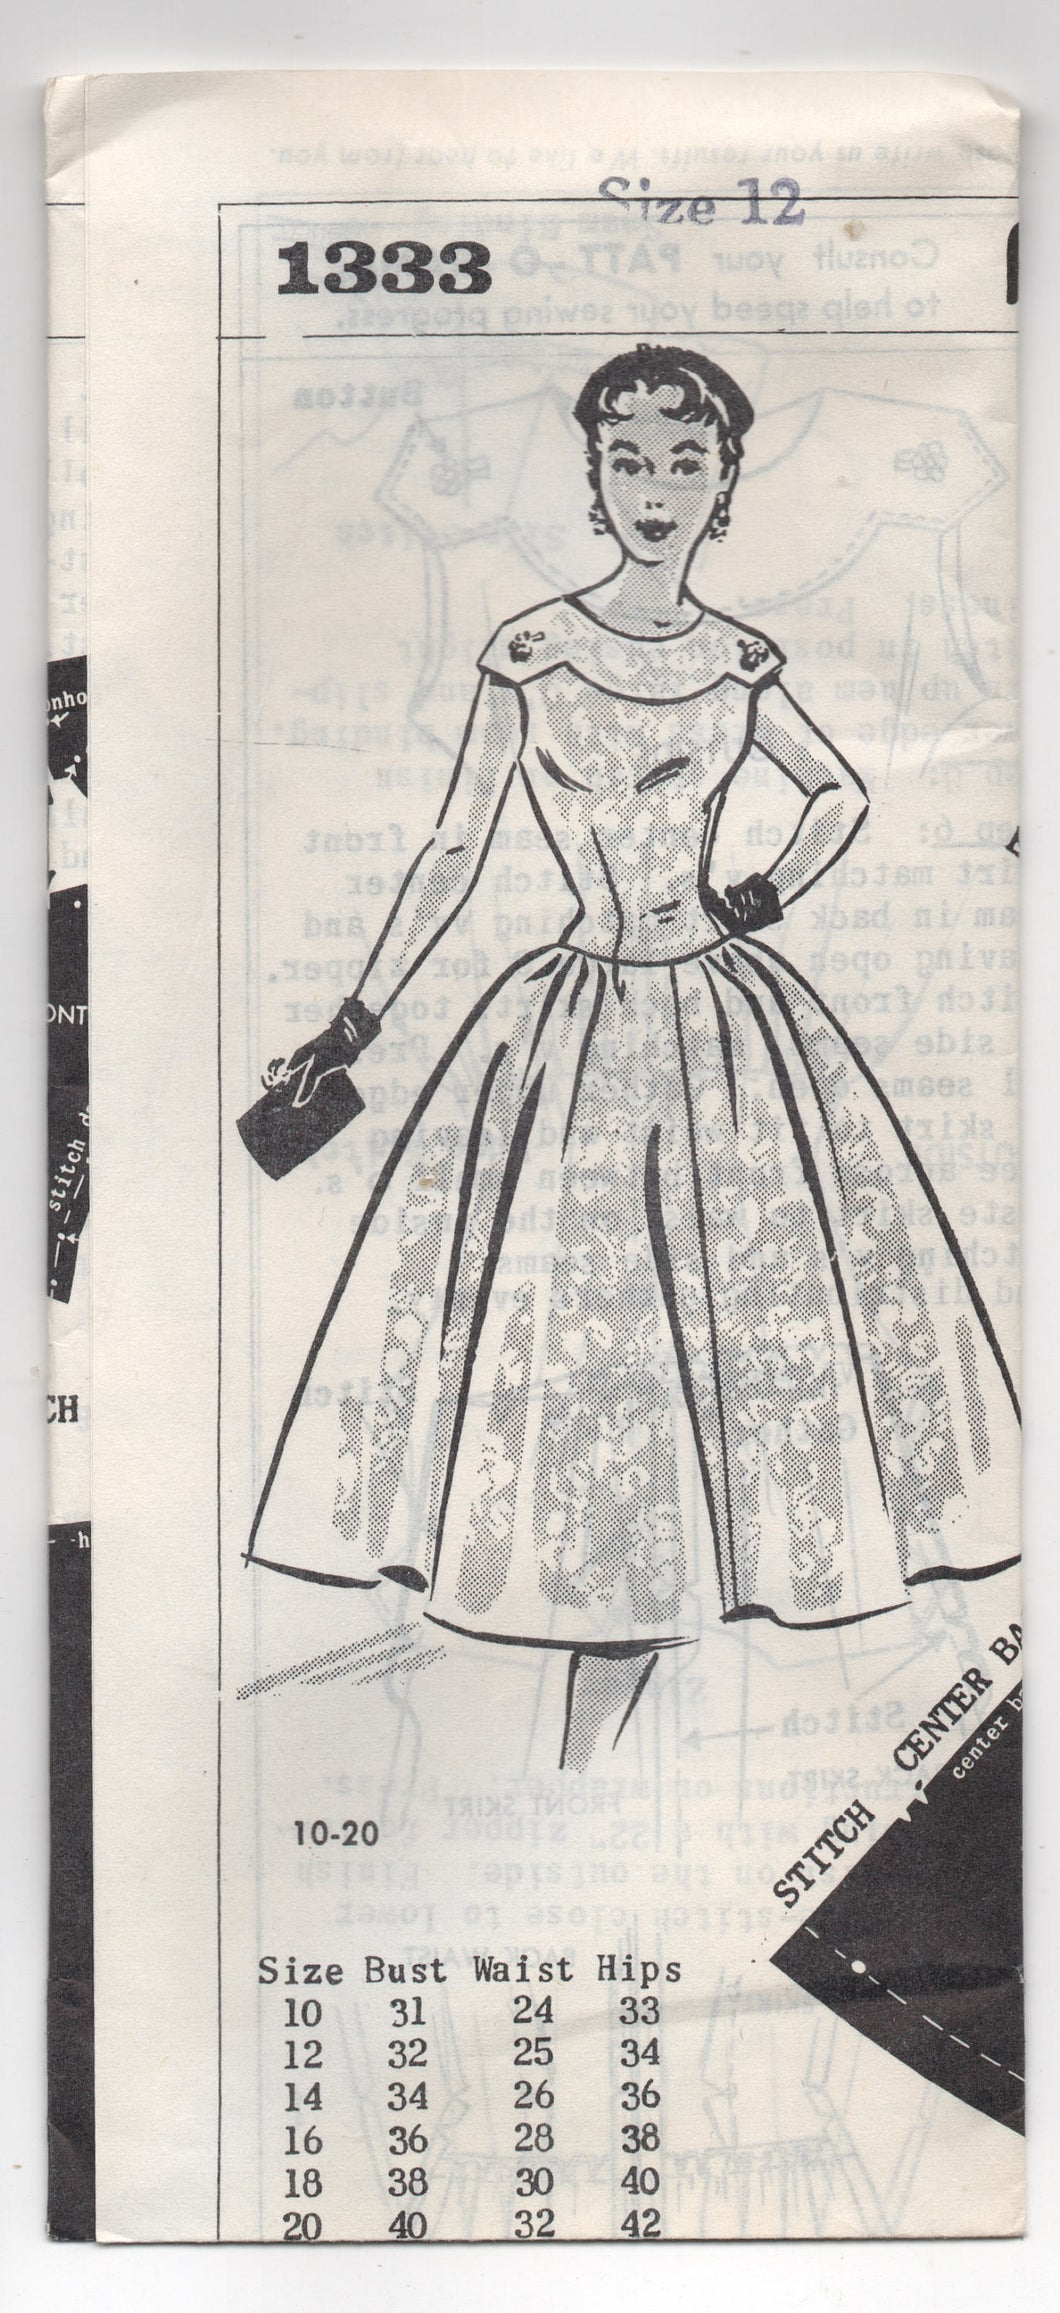 Early 1960's Grit One Piece Cocktail Dress pattern with Scoop Neck - Bust 31